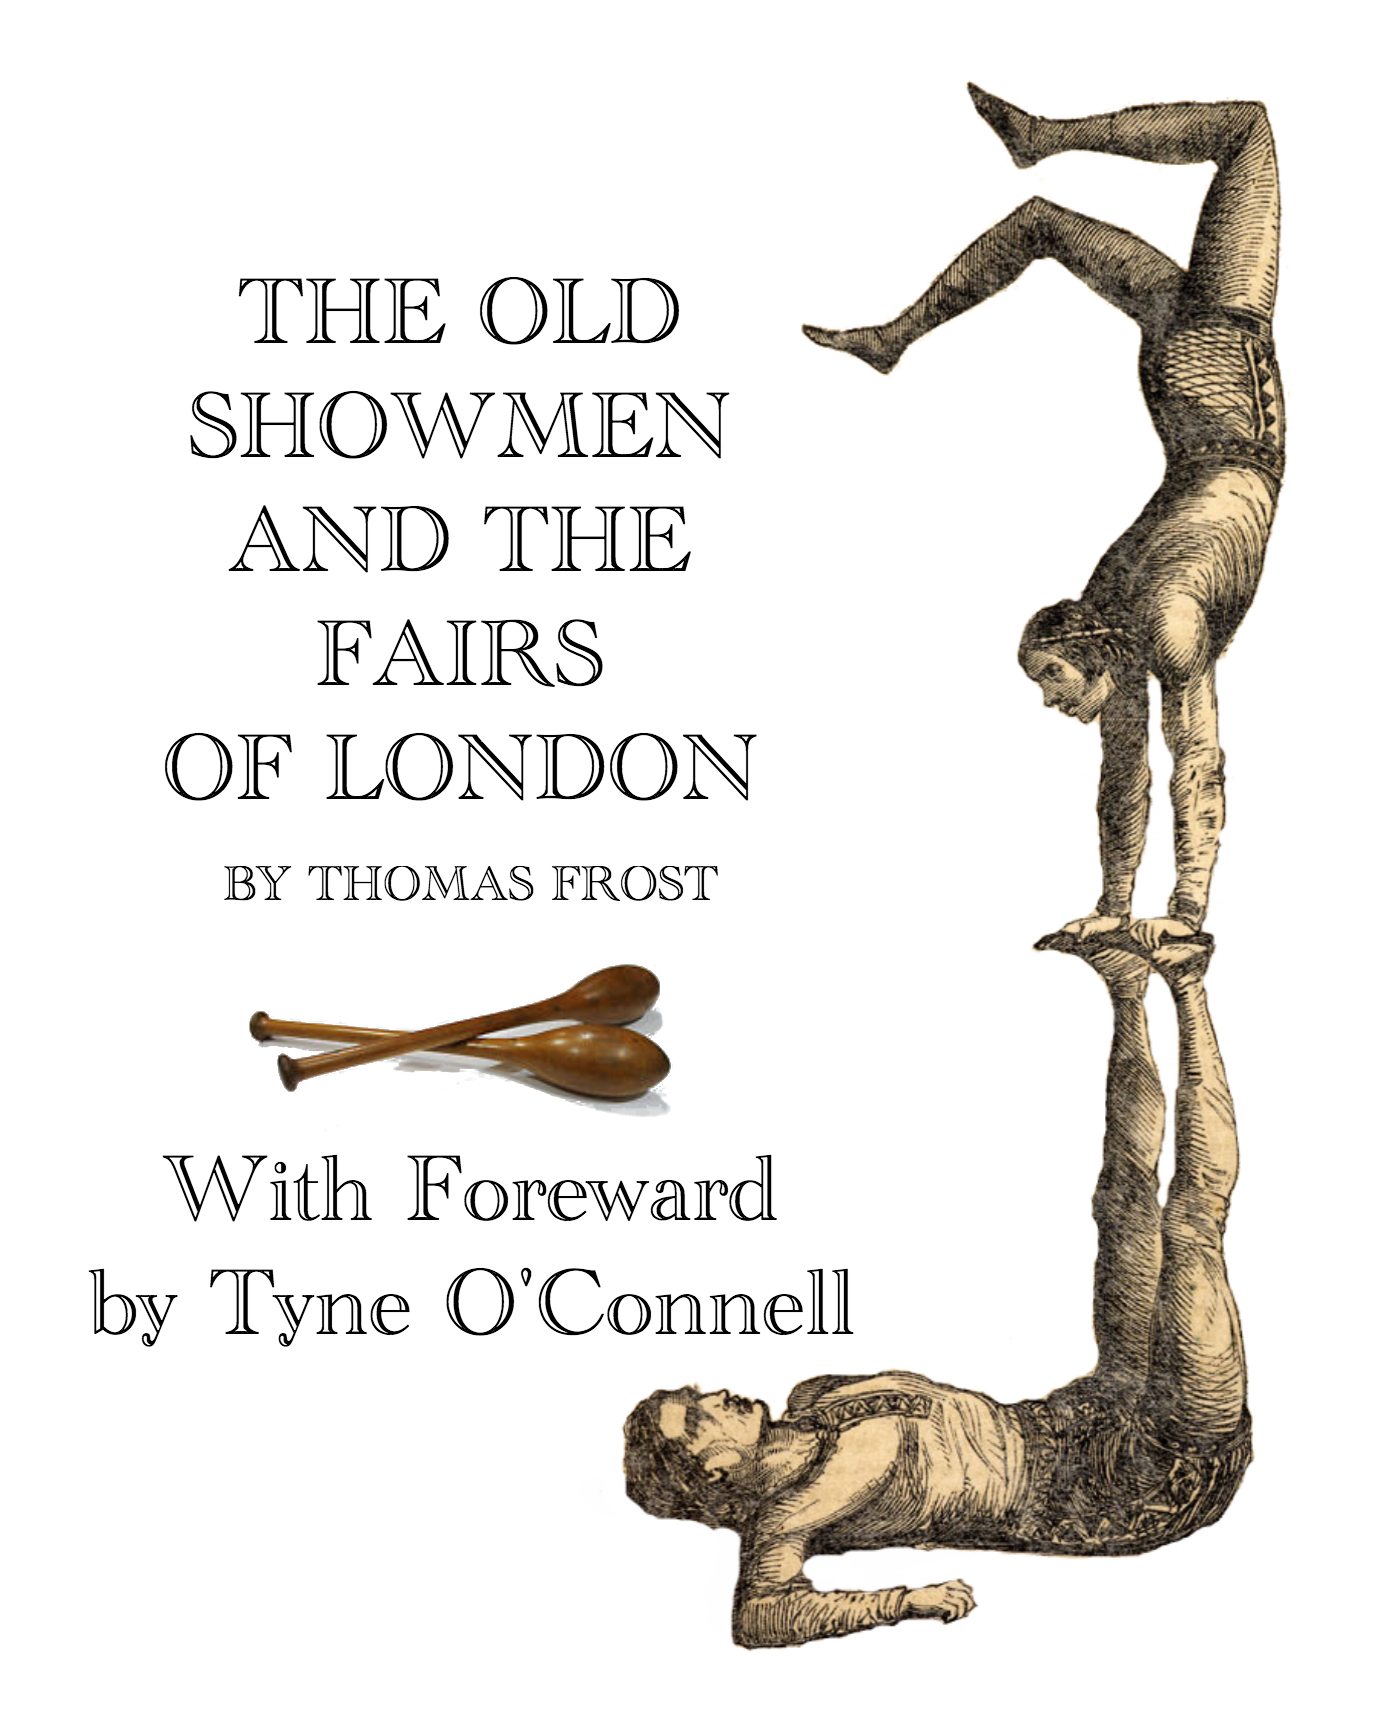 OLD SHOWMEN OF LONDON BY THOMAS FROST - SEPIA 1875 Smashwords